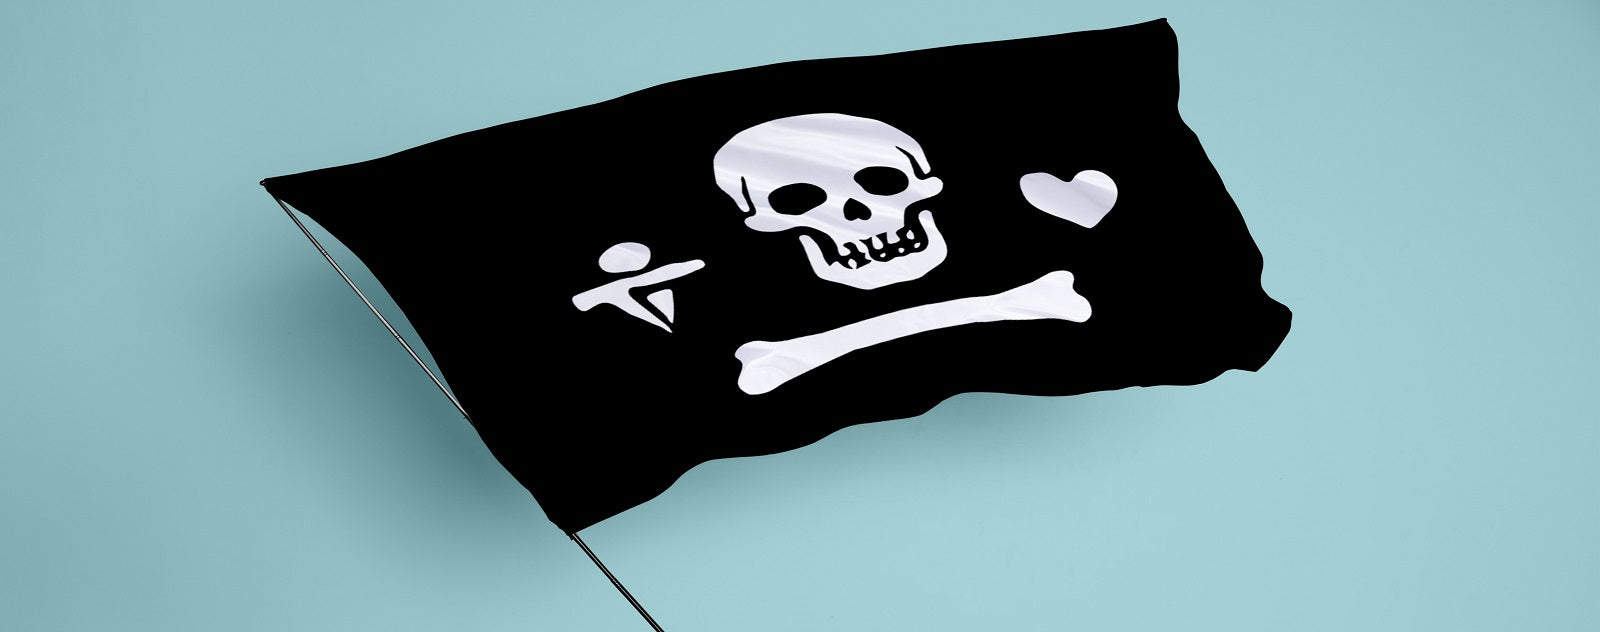 Drapeau pirate Stede Bonnet